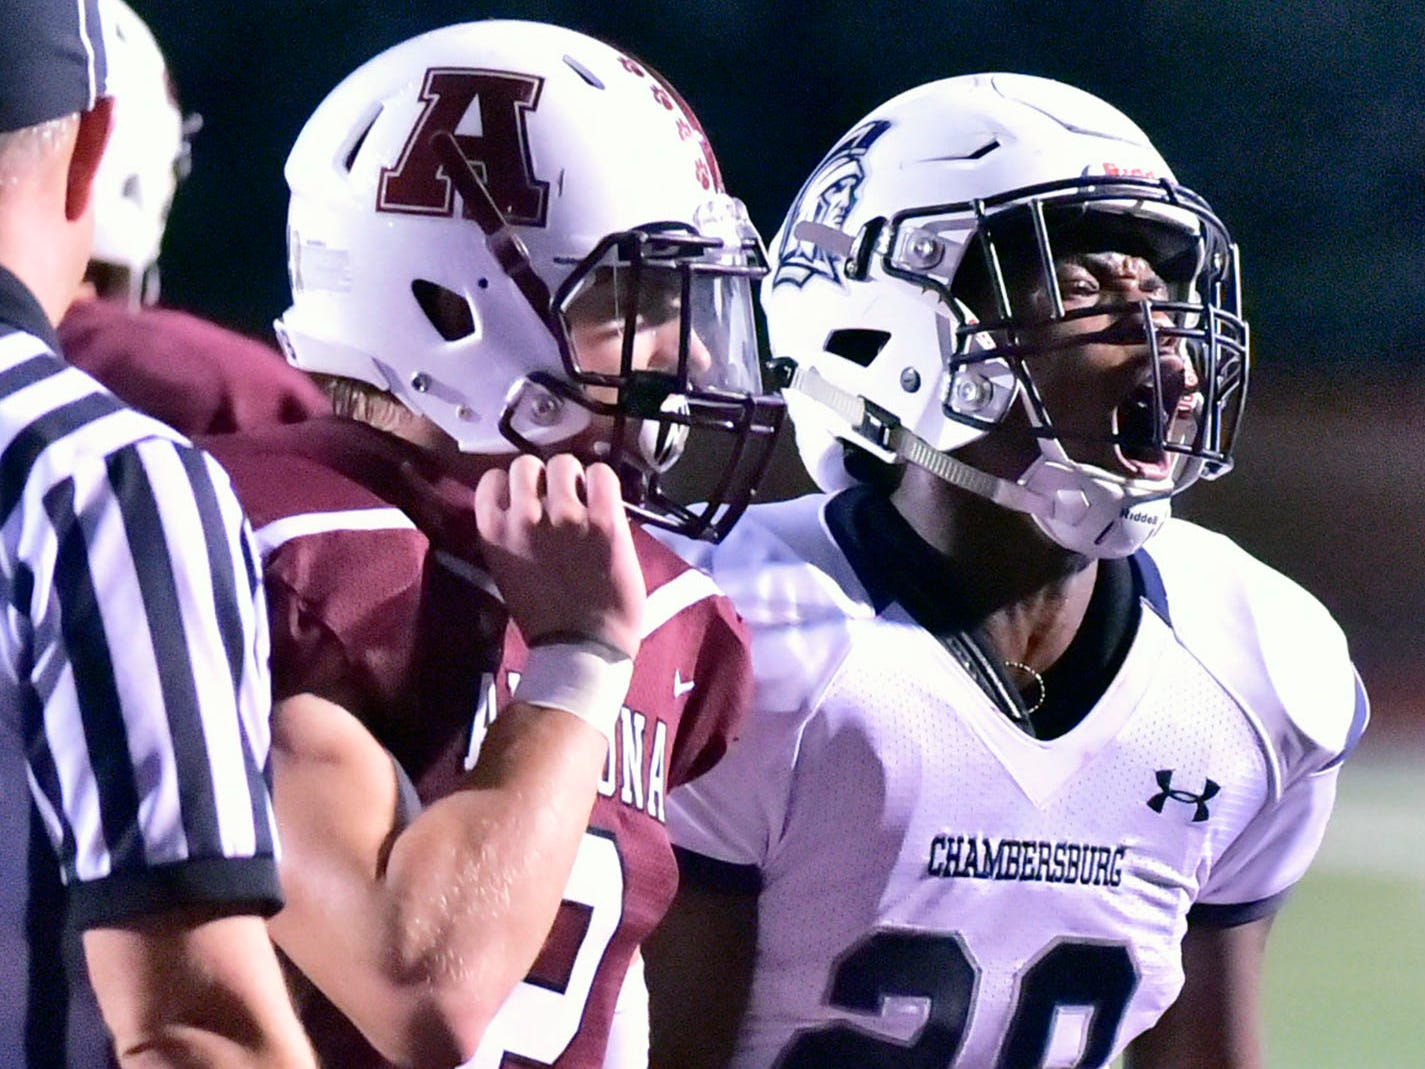 Keyshawn Jones celebrates a trip to the endzone. Chambersburg defeated Altoona 48-28 in PIAA football to move to 4-0 on Friday, Sept. 14, 2018.